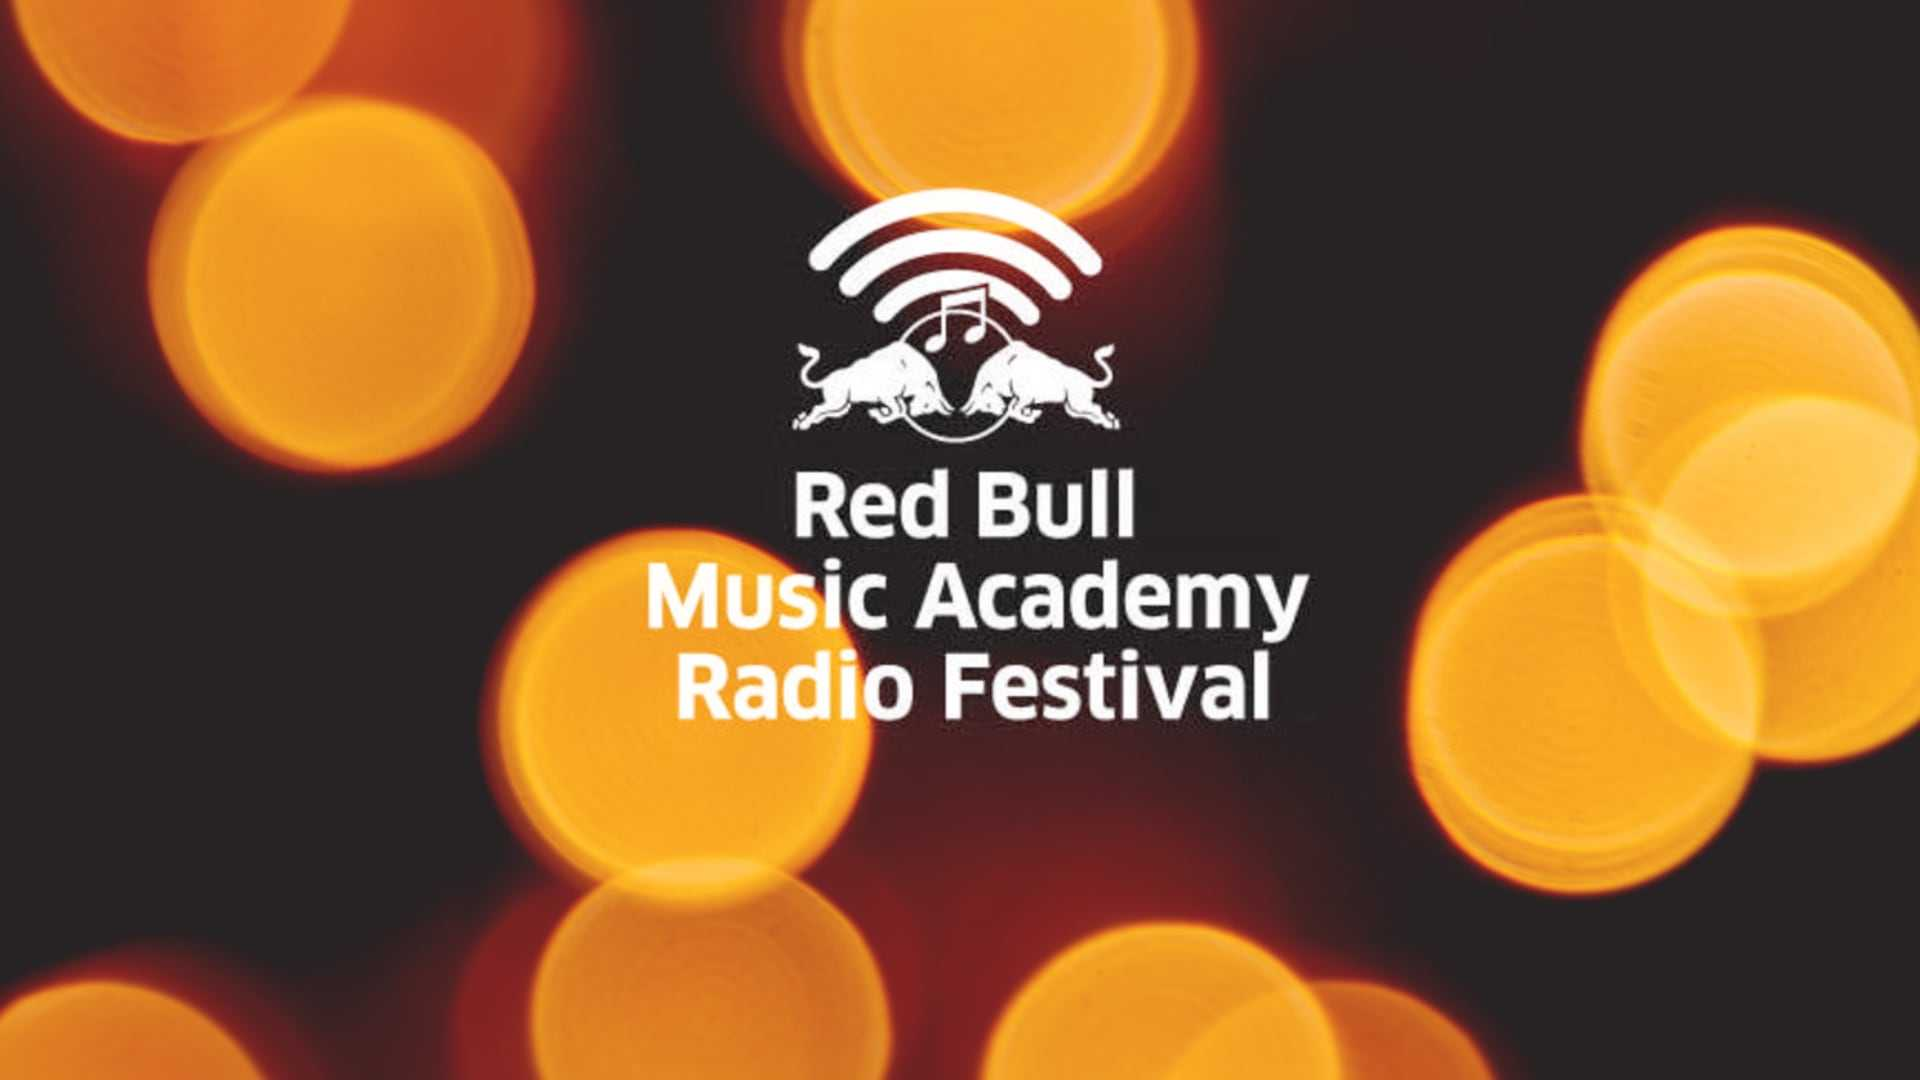 Red Bull Music Academy & Red Bull Radio